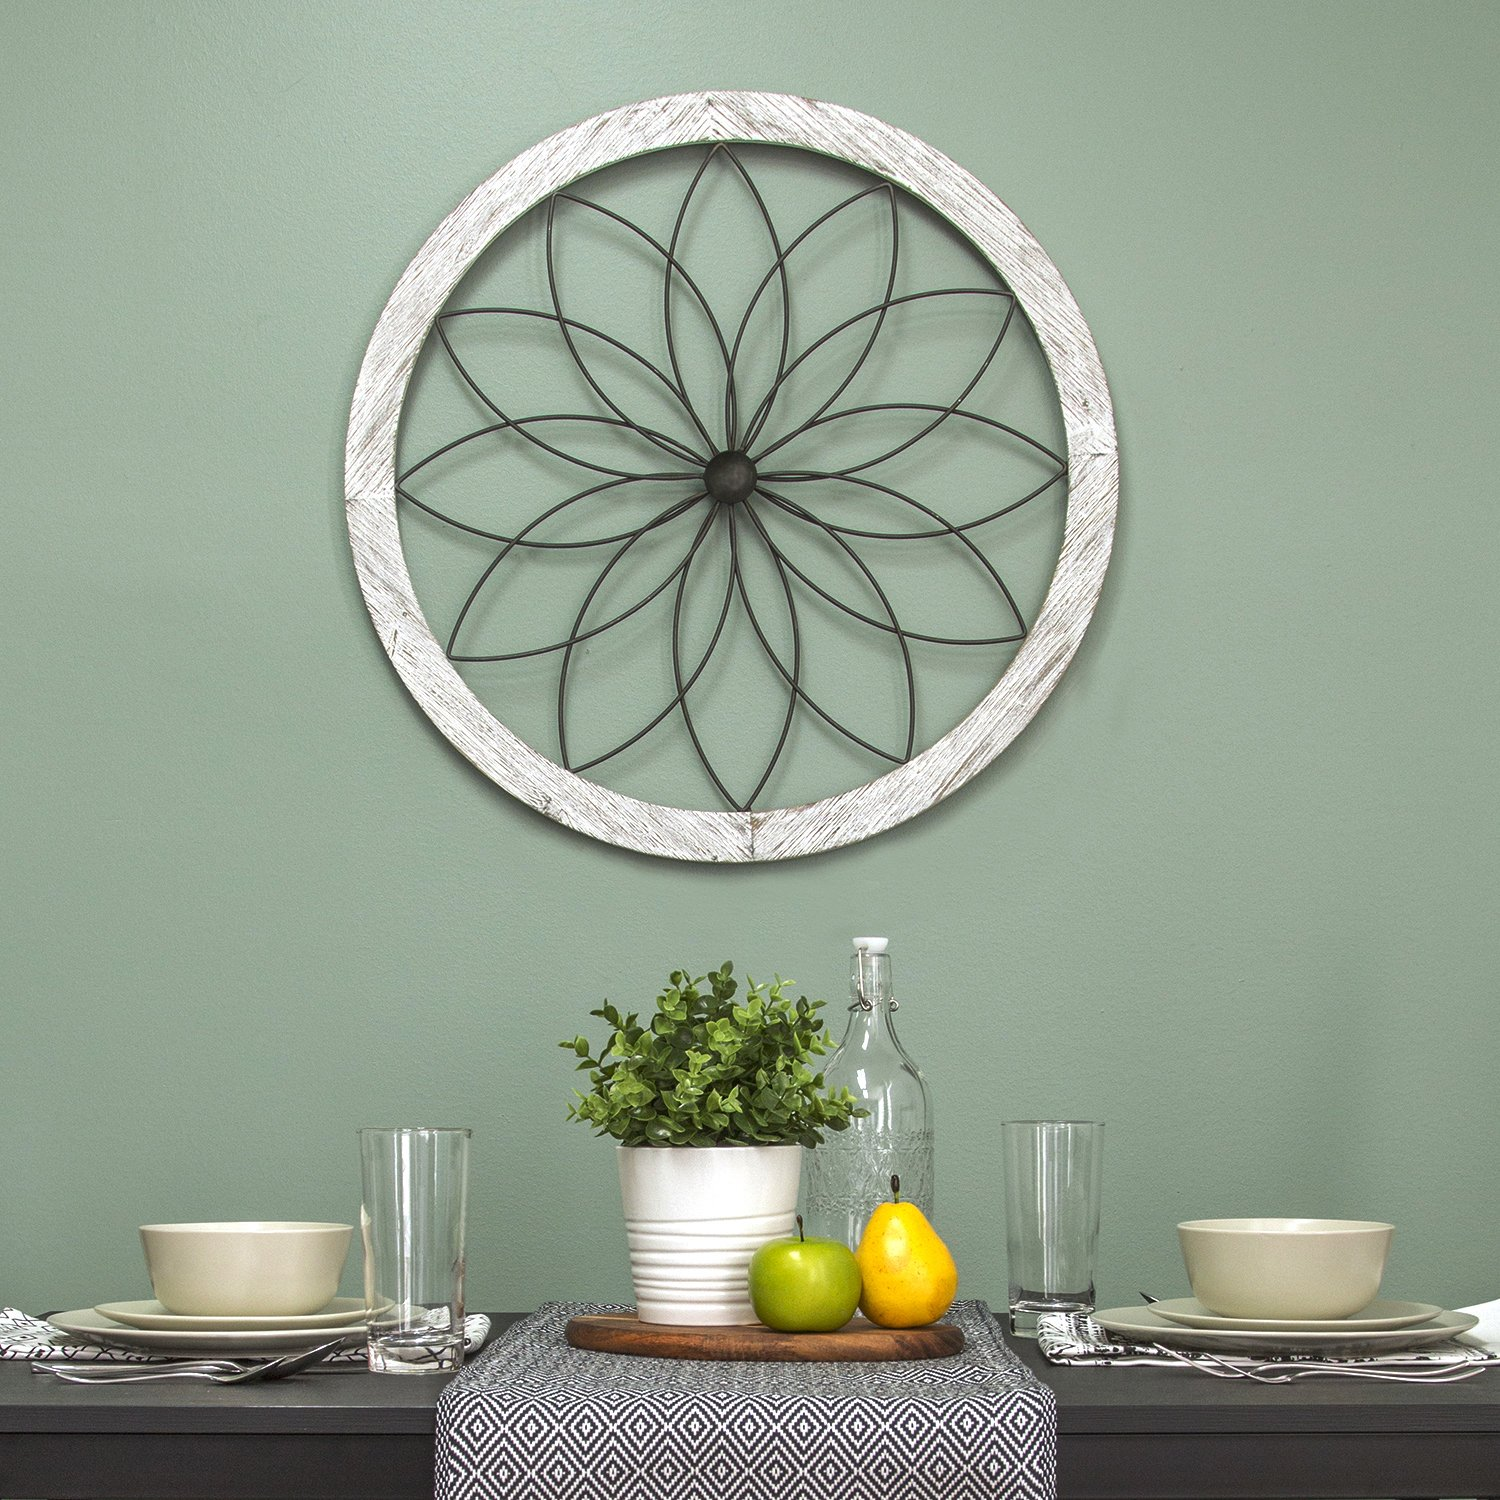 Details about Stratton Home Decor Metal and Wood Art Deco Flower Wall  Decor, White For Parts